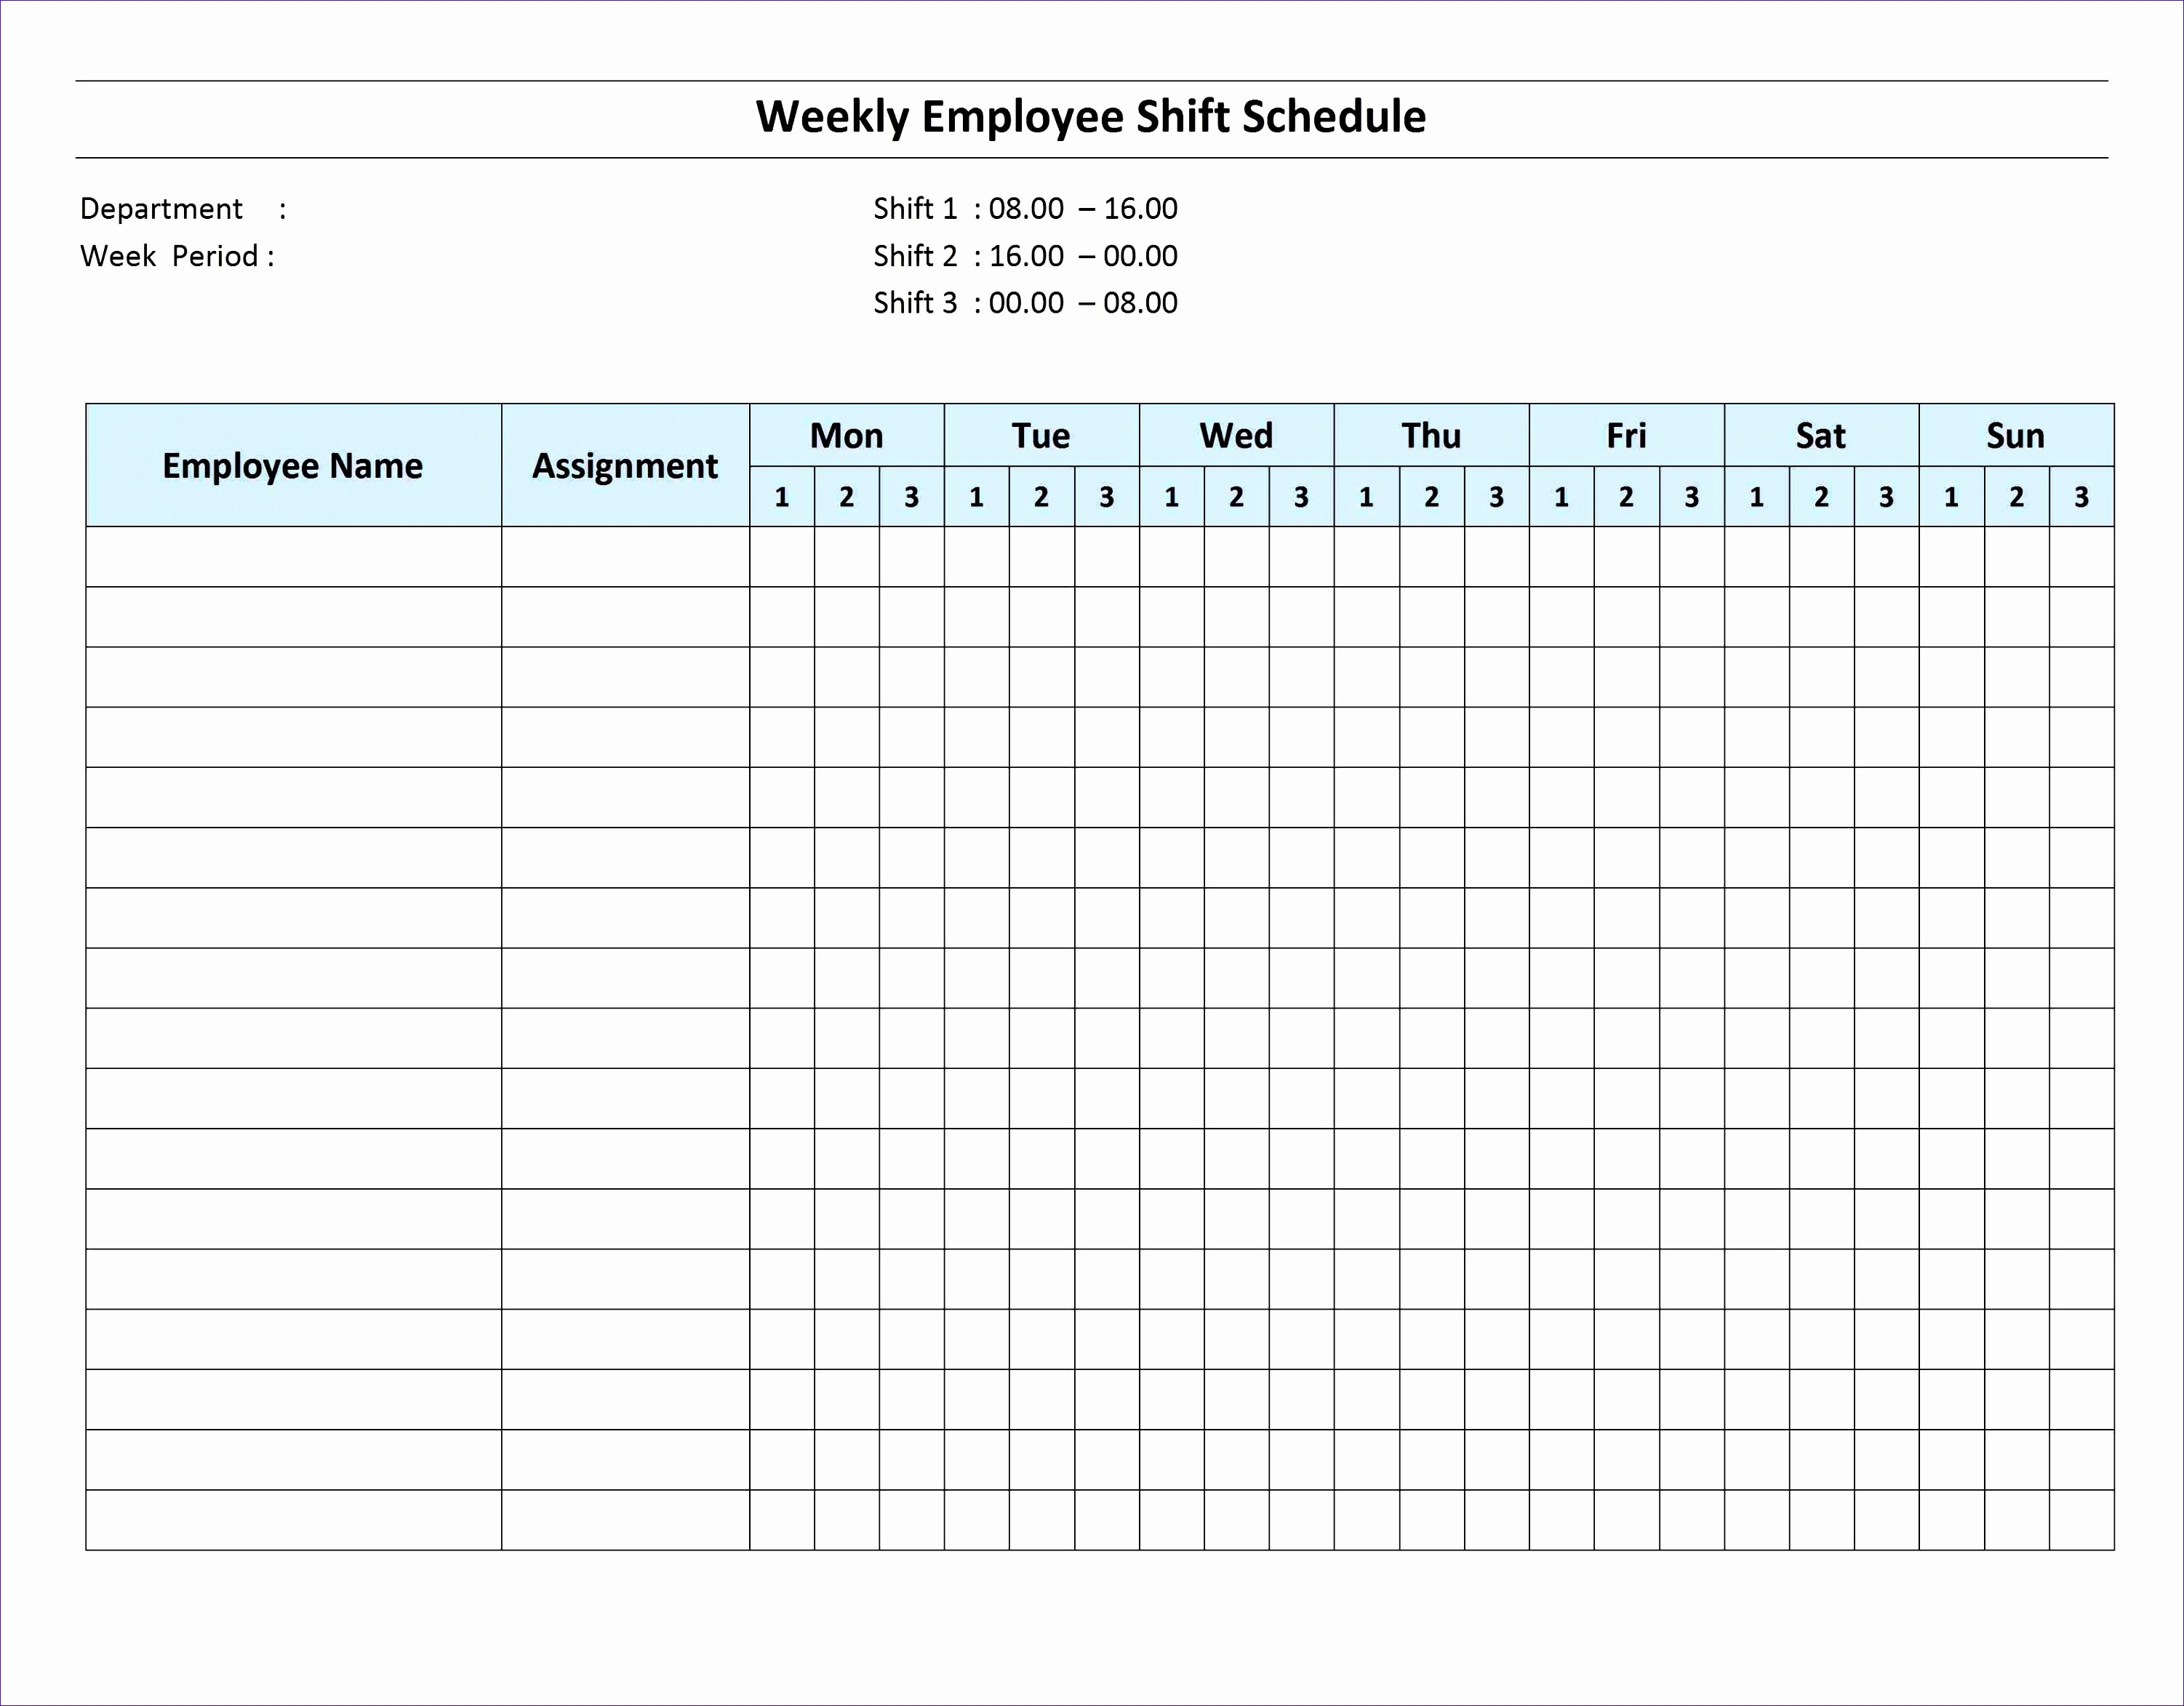 On Call Schedule Template Elegant Call Schedule Template Excel Tnrkp Best Hourly